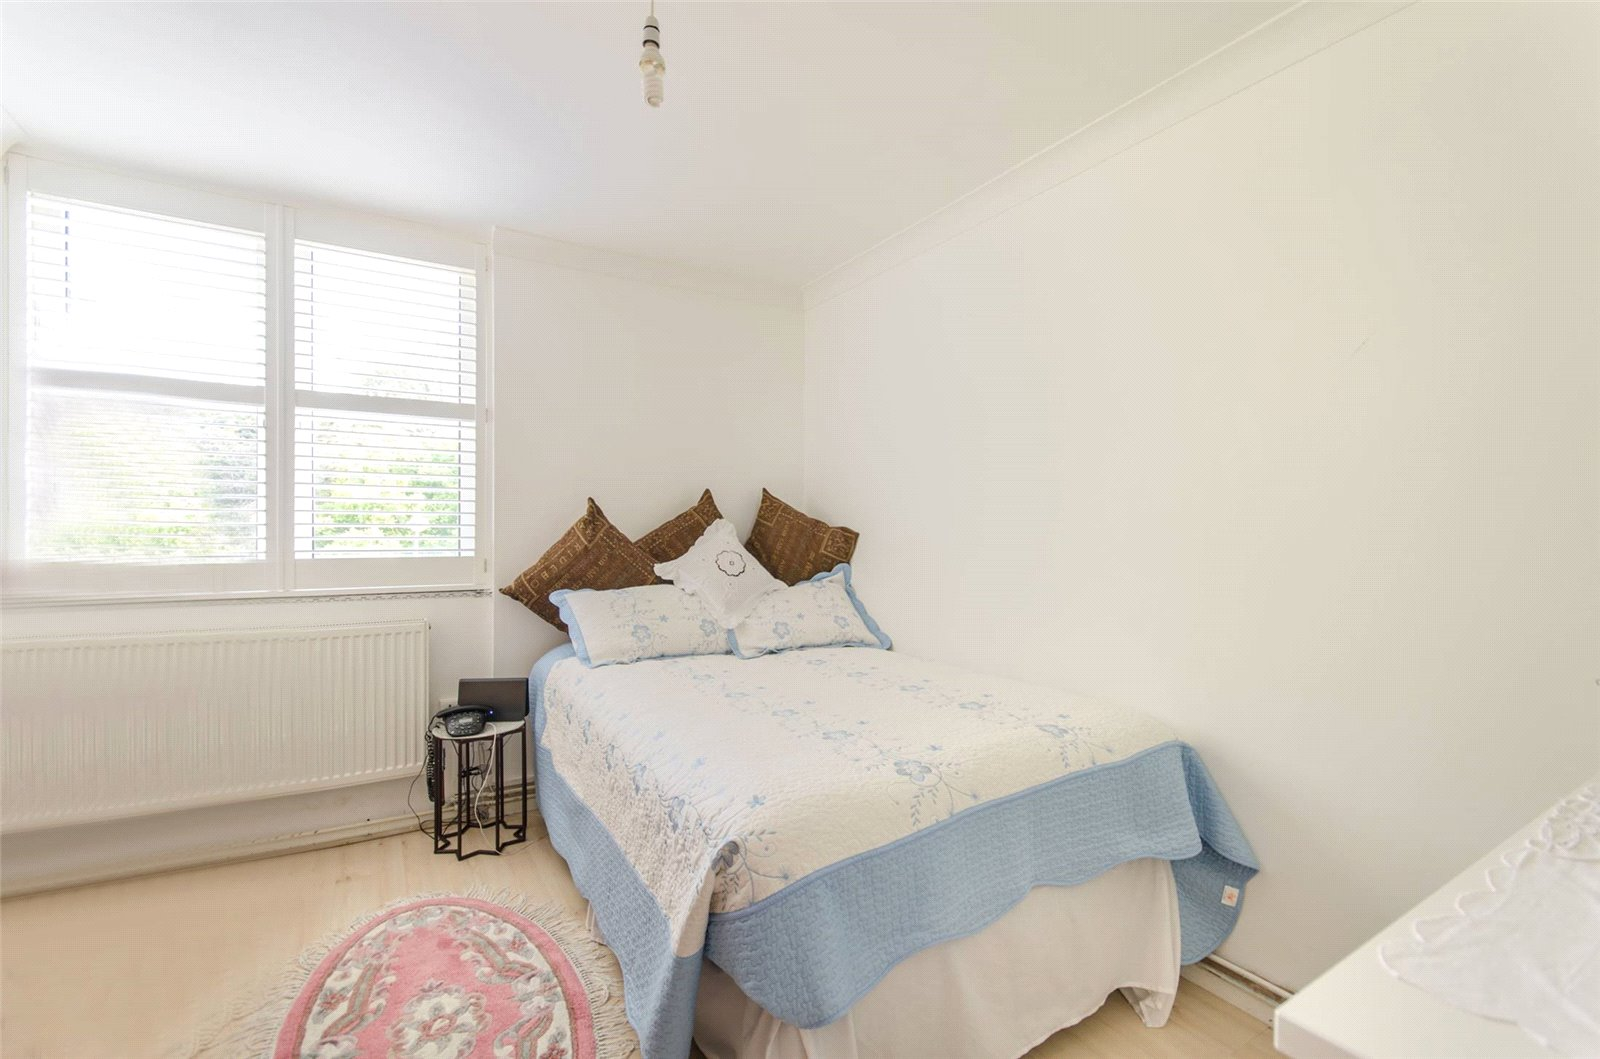 2 bed flat for sale in Wimbledon  - Property Image 3